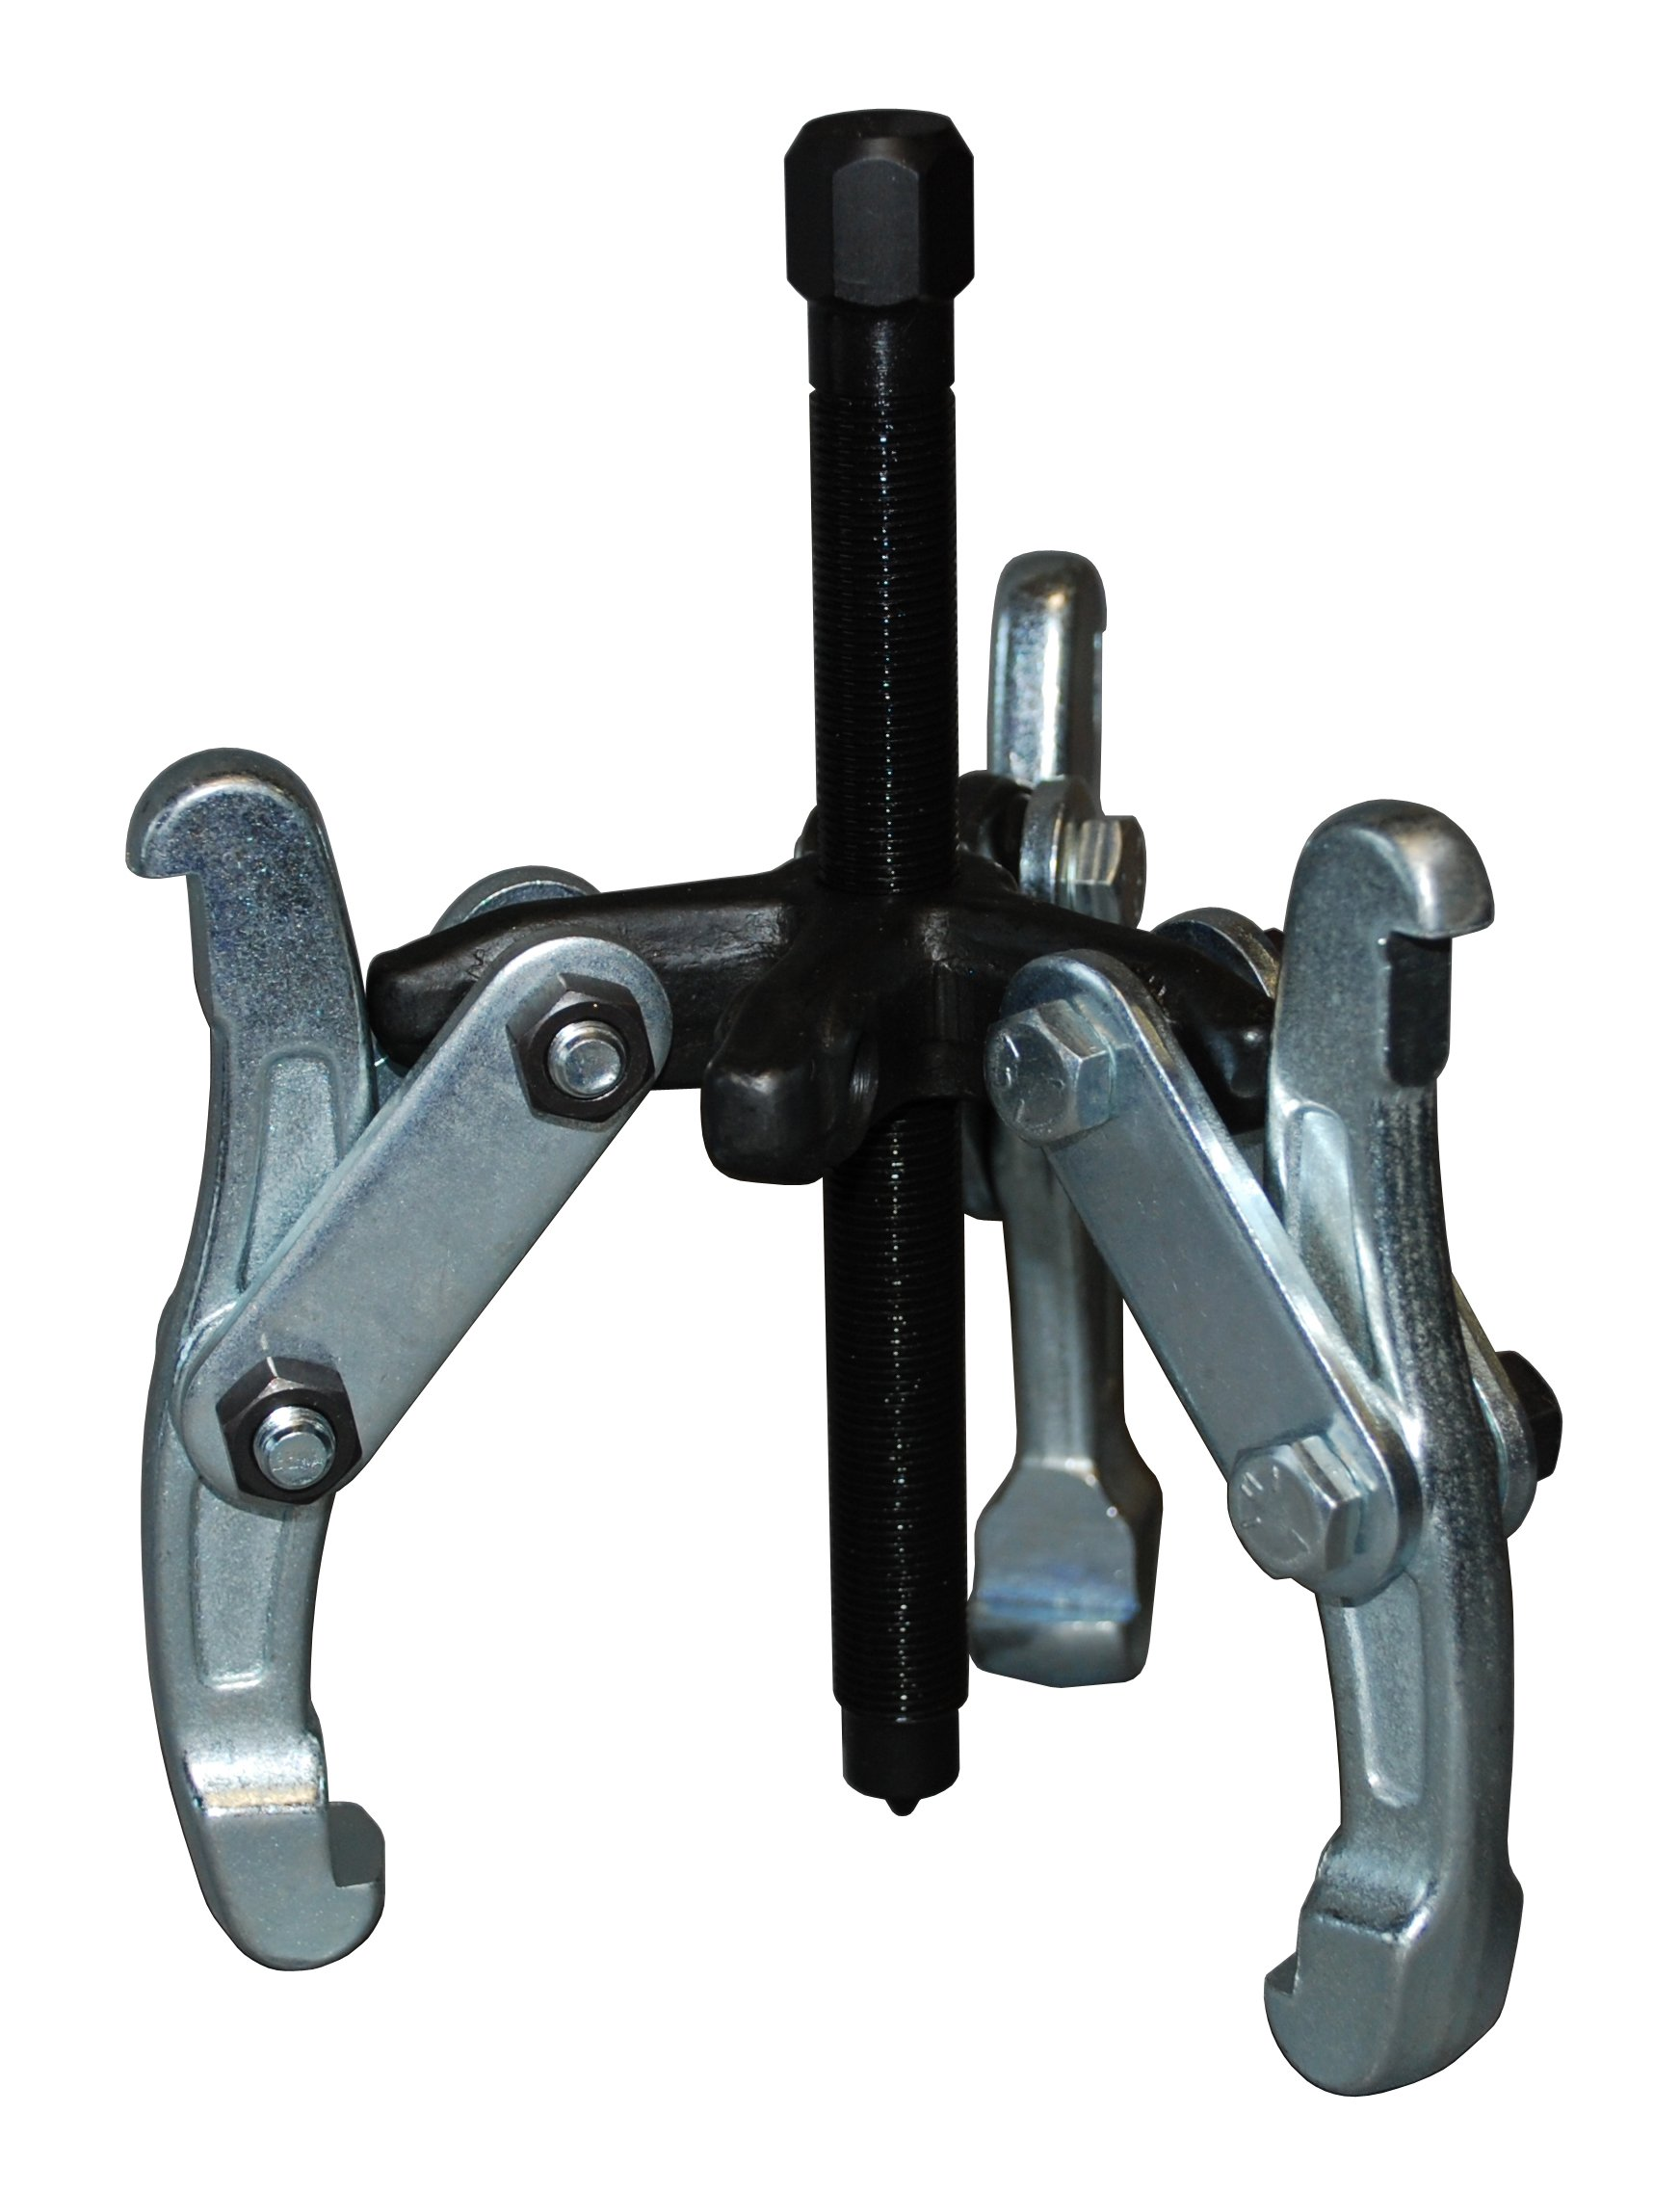 Cal-Van Tools 951 2 or 3-Jaw Puller